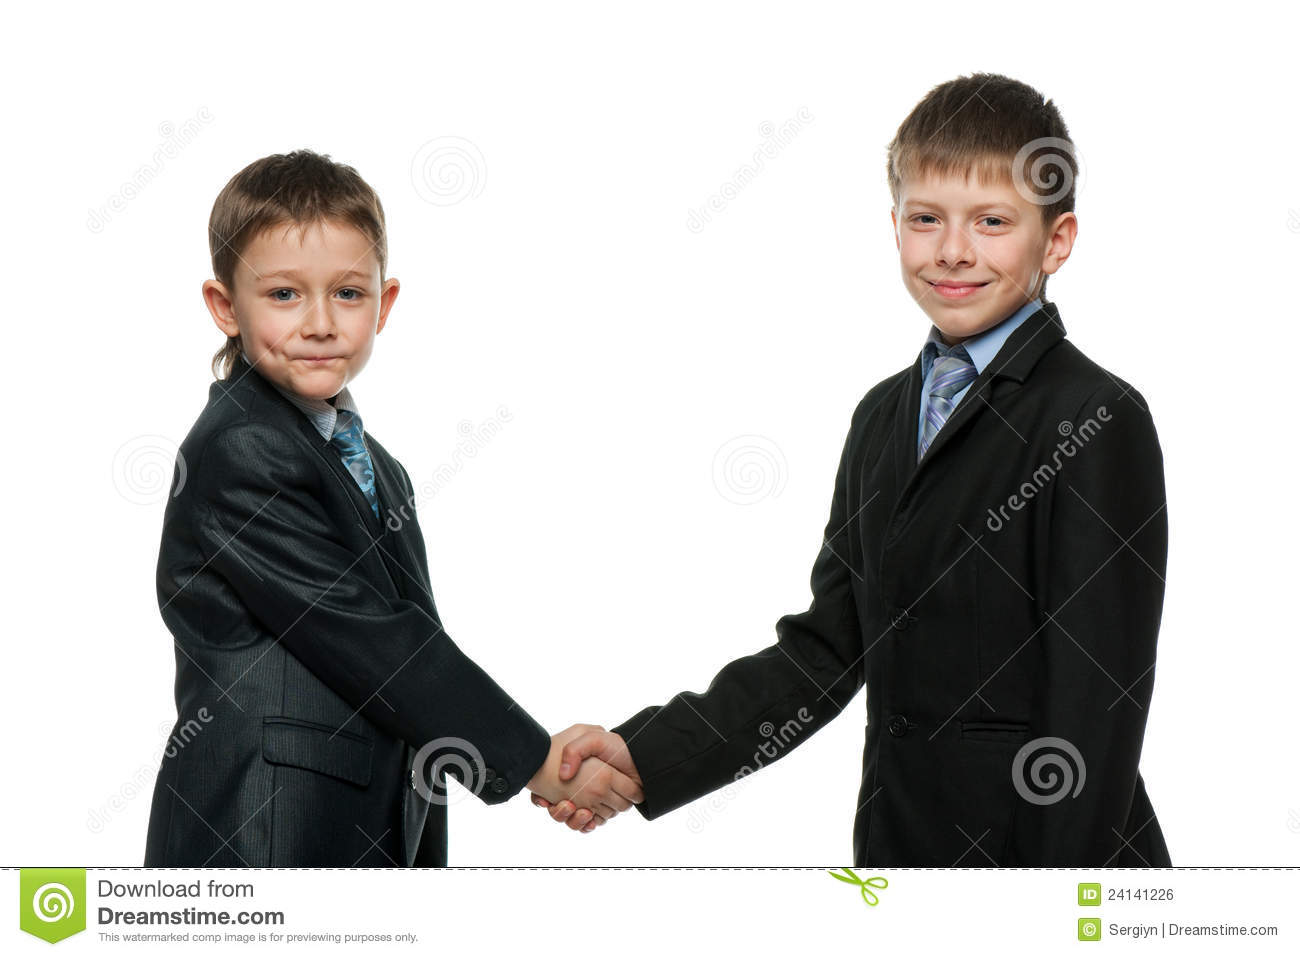 Two schoolboys get to know each other